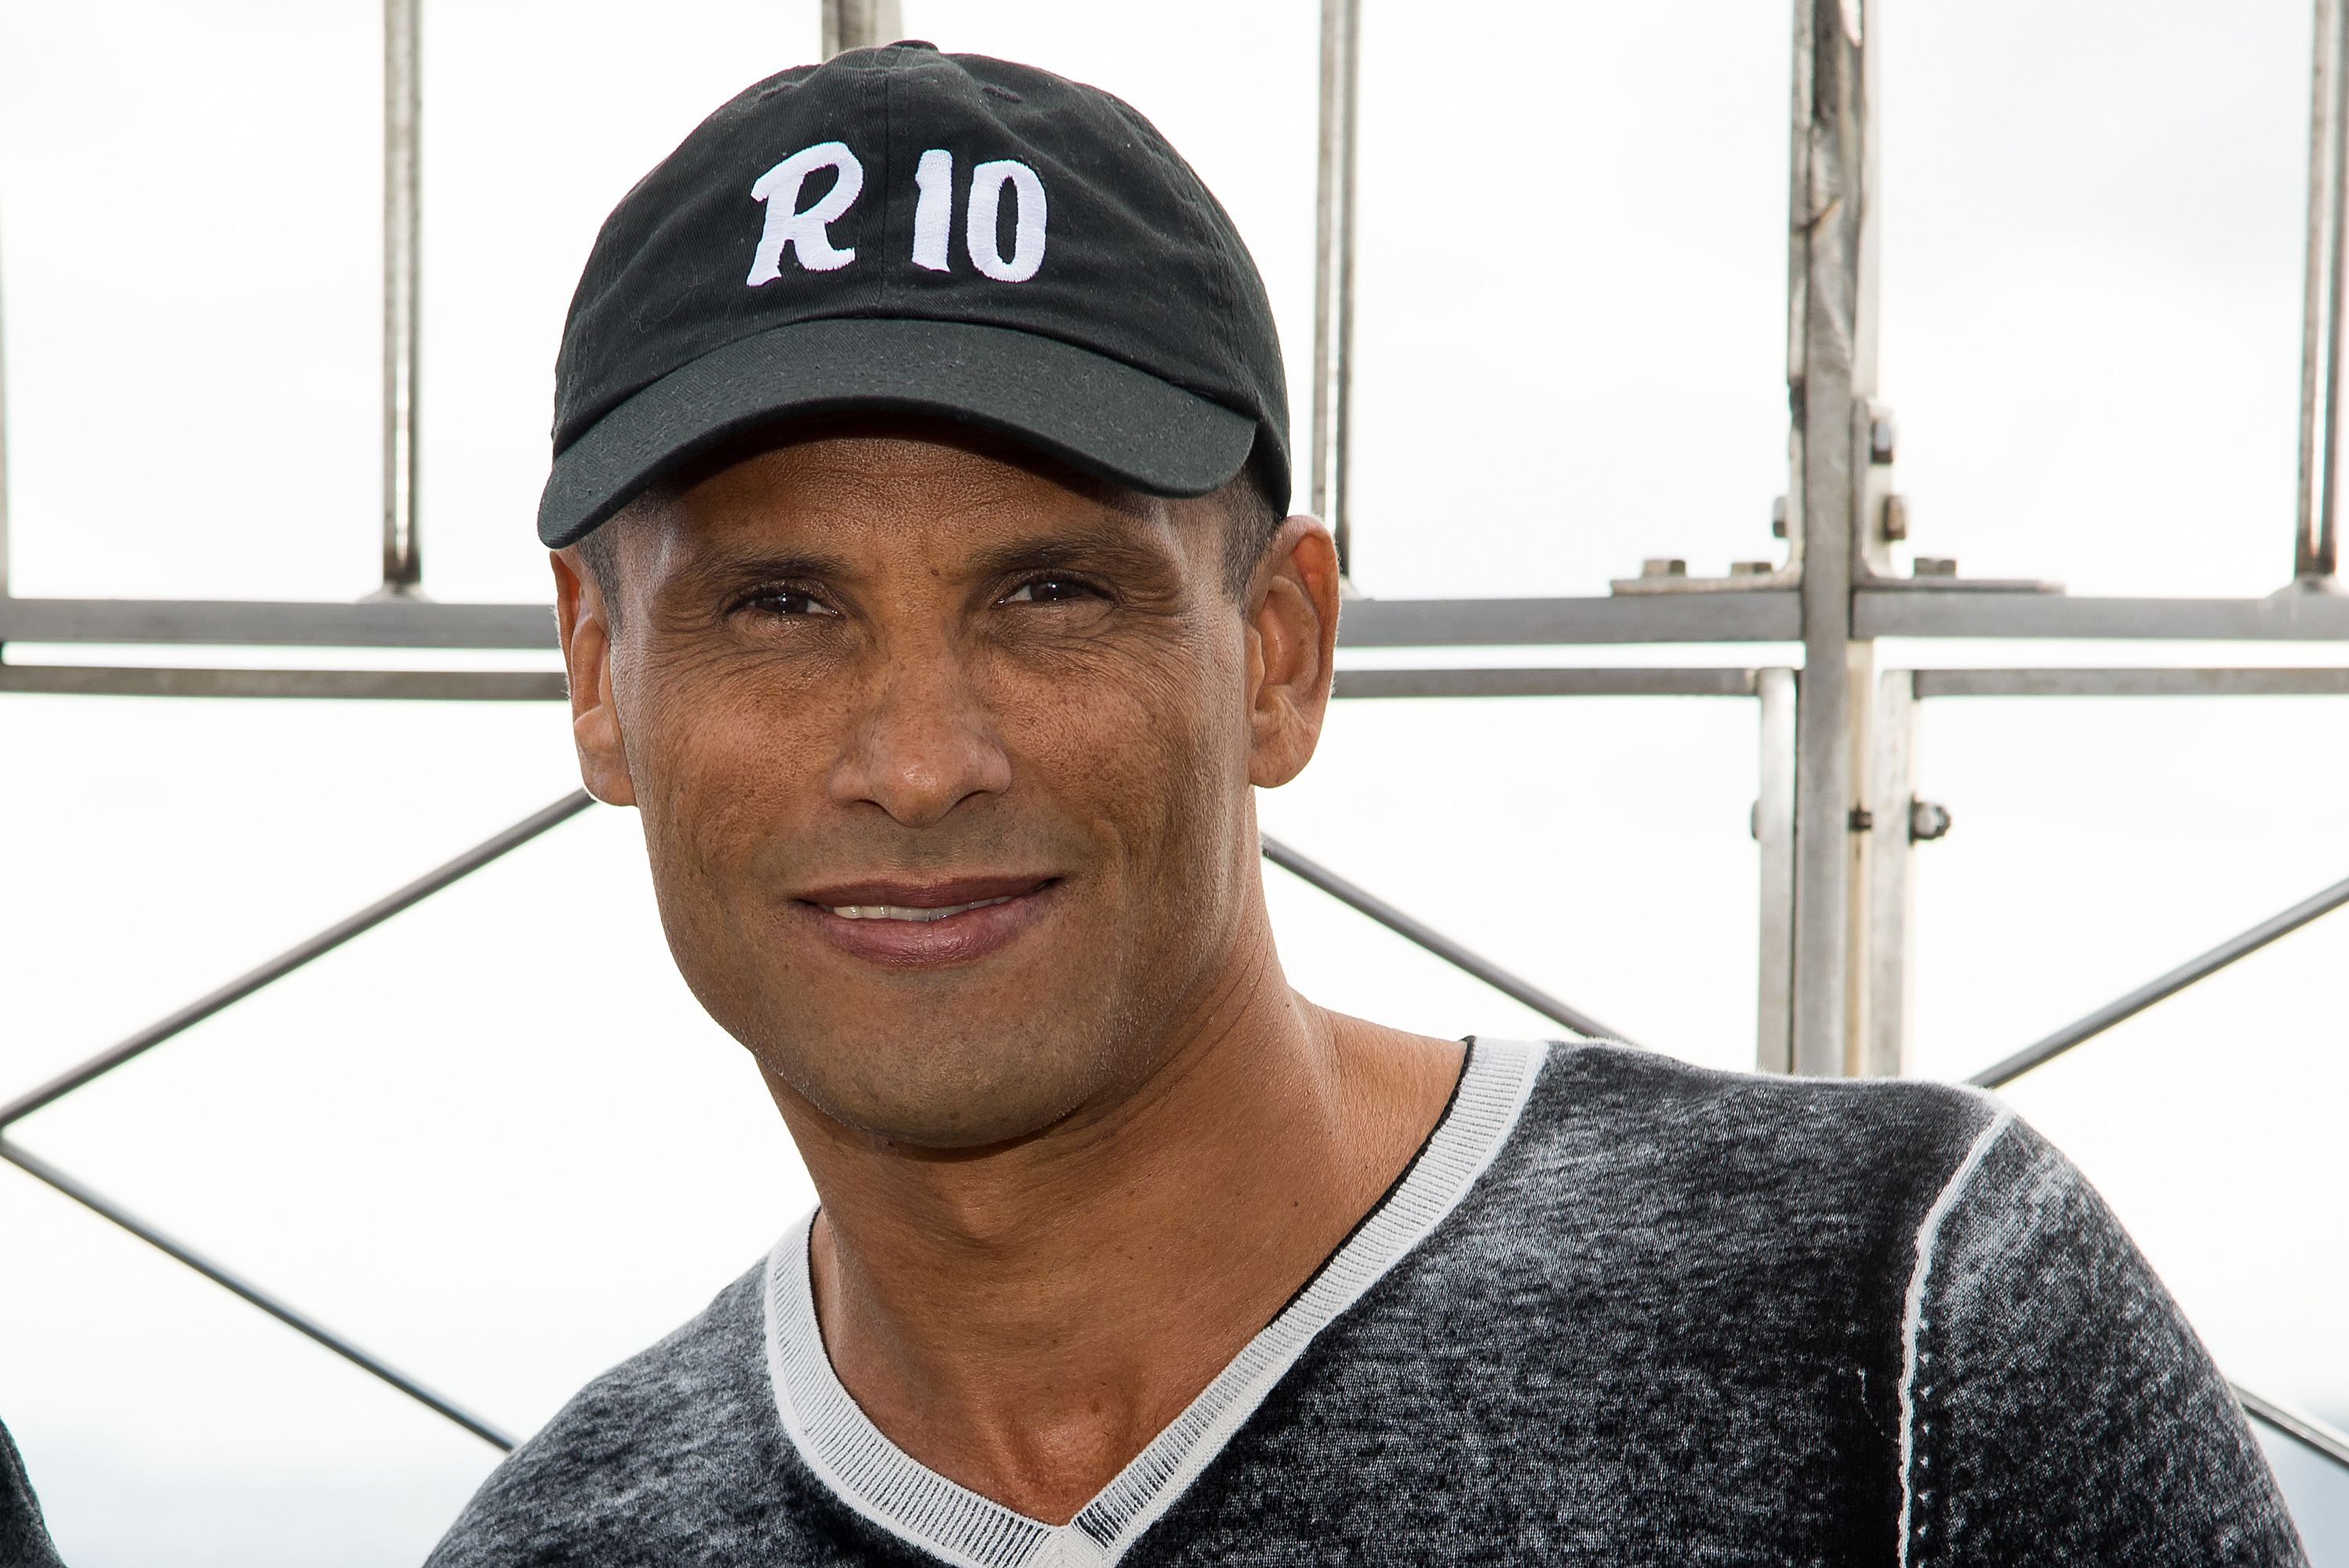 Soccer player Rivaldo visits The Empire State Building on March 17, 2015 in New York City.